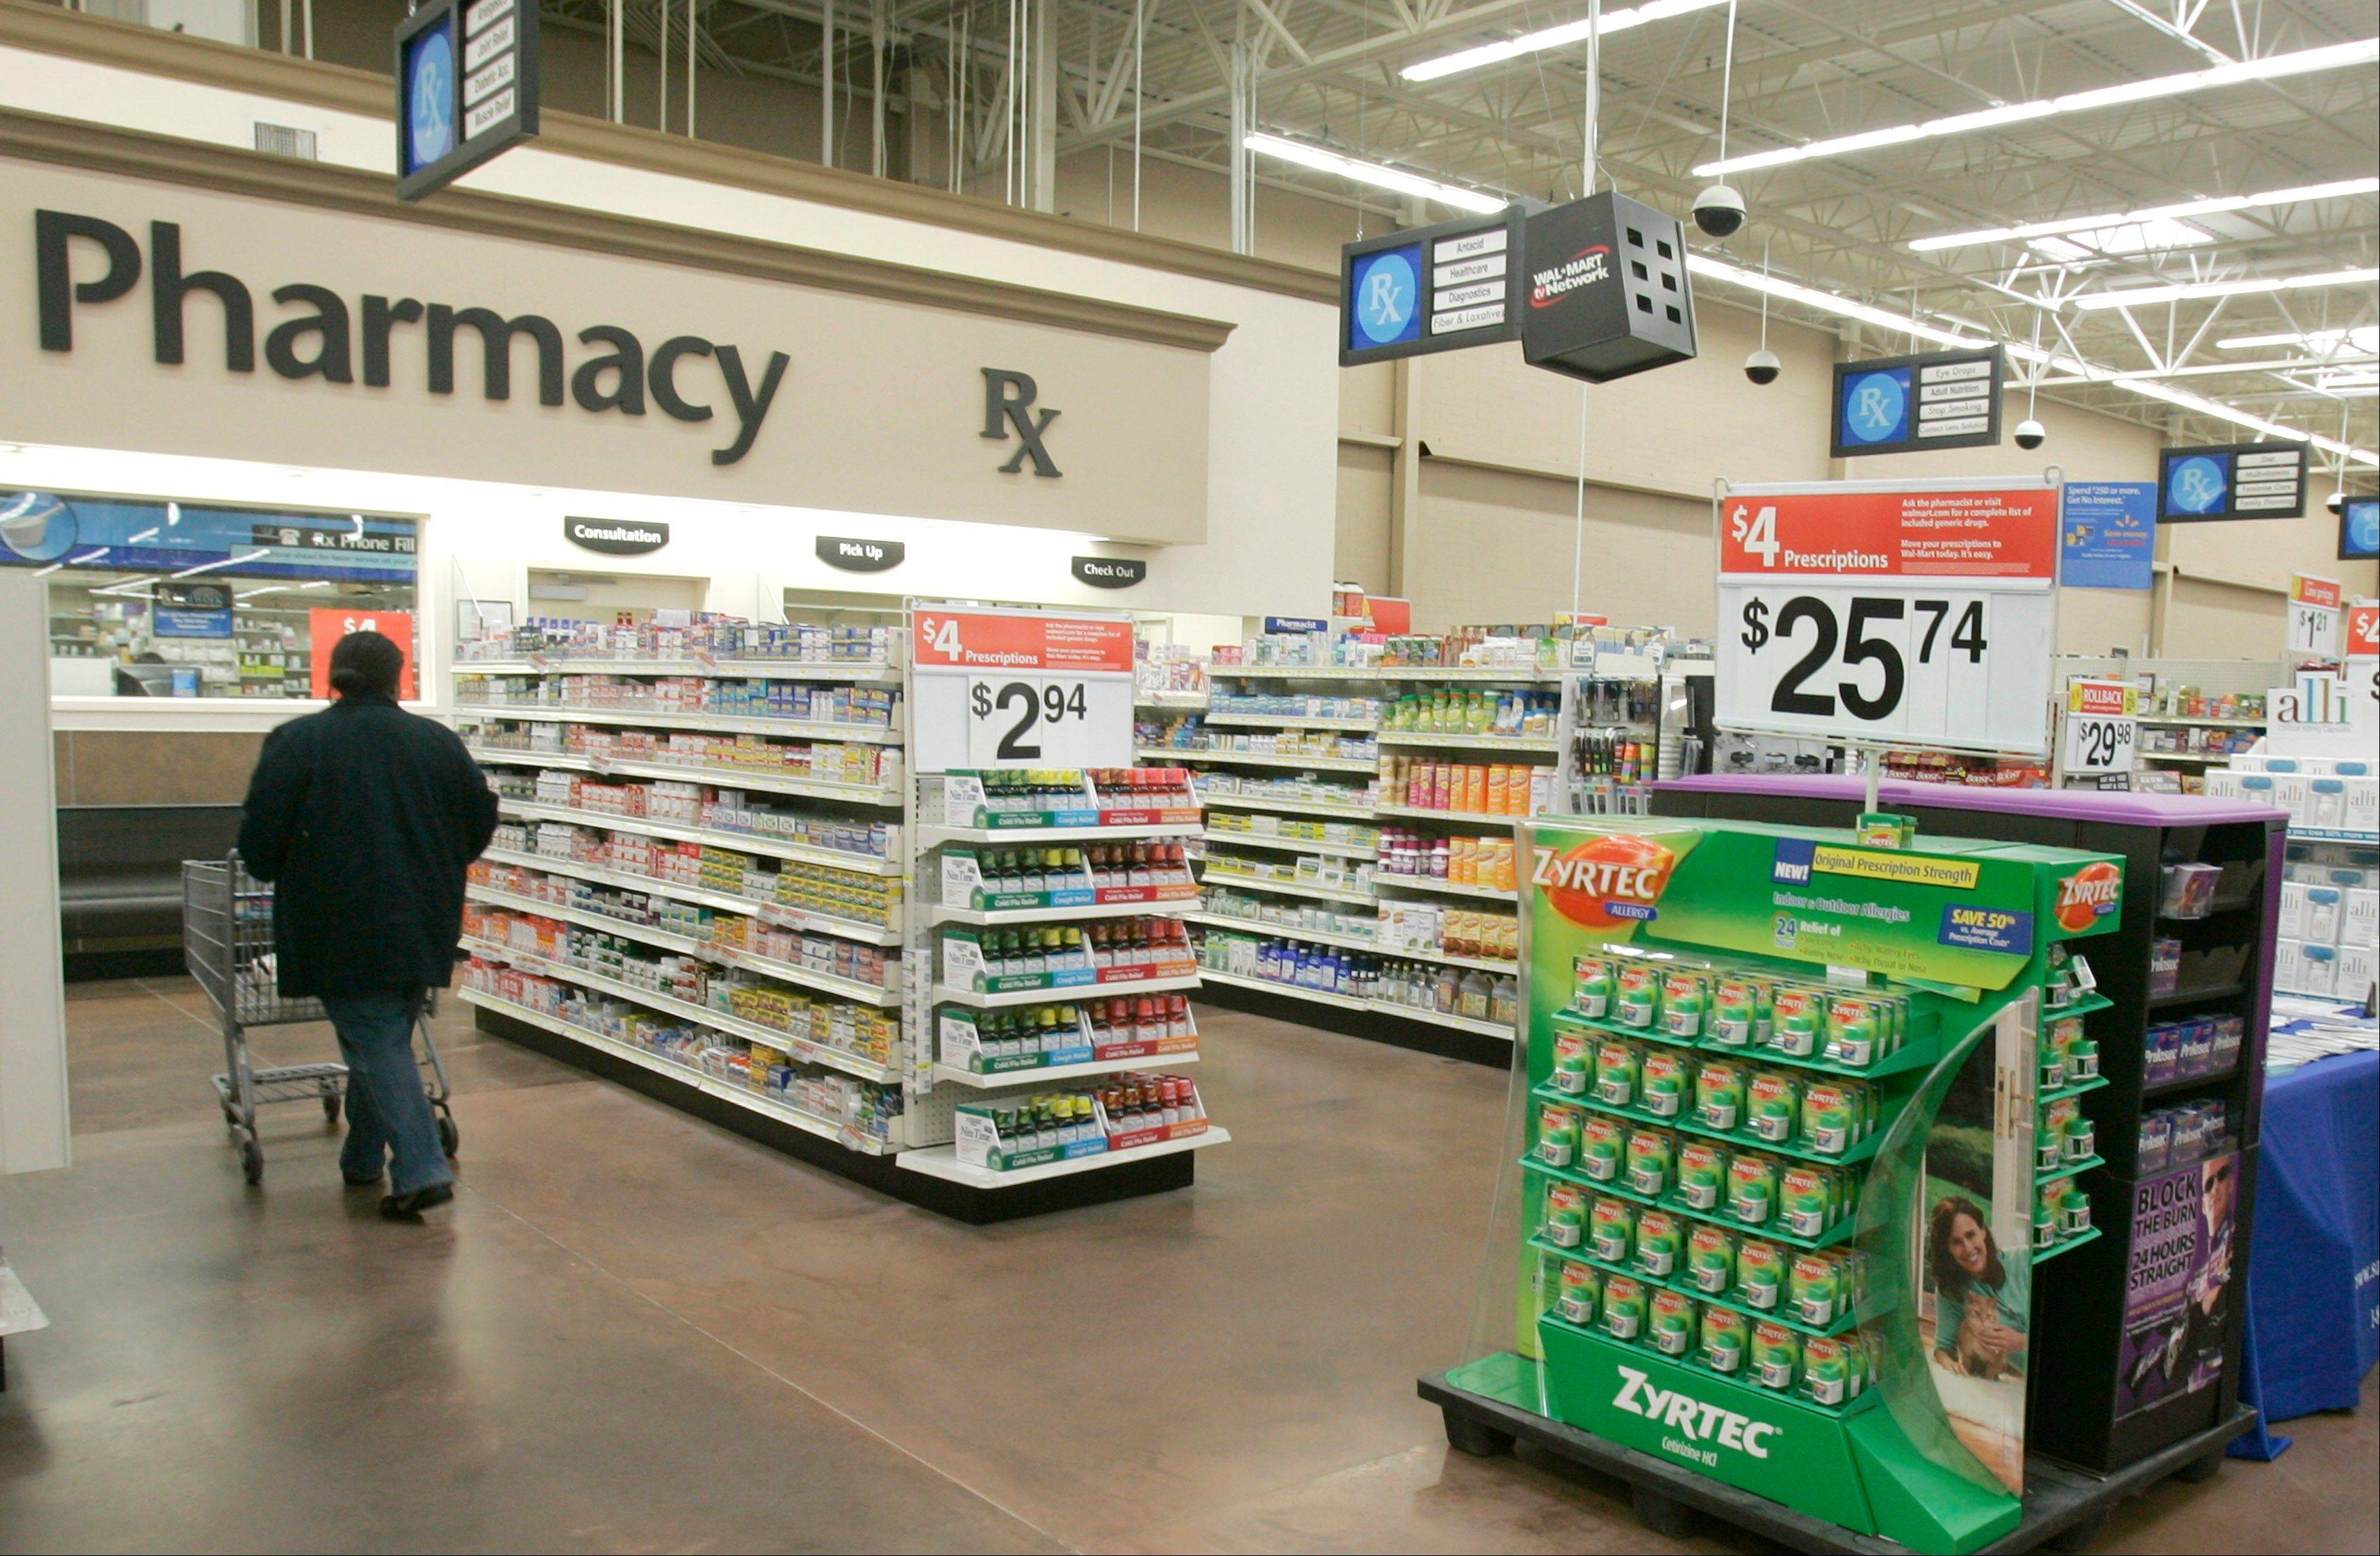 A shopper walks toward the pharmacy at a Little Rock, Ark., Wal-Mart store. A study says seniors in seven of the 10 most popular Medicare prescription drug plans will be hit with double-digit premium hikes next year if they donít shop for a better deal.